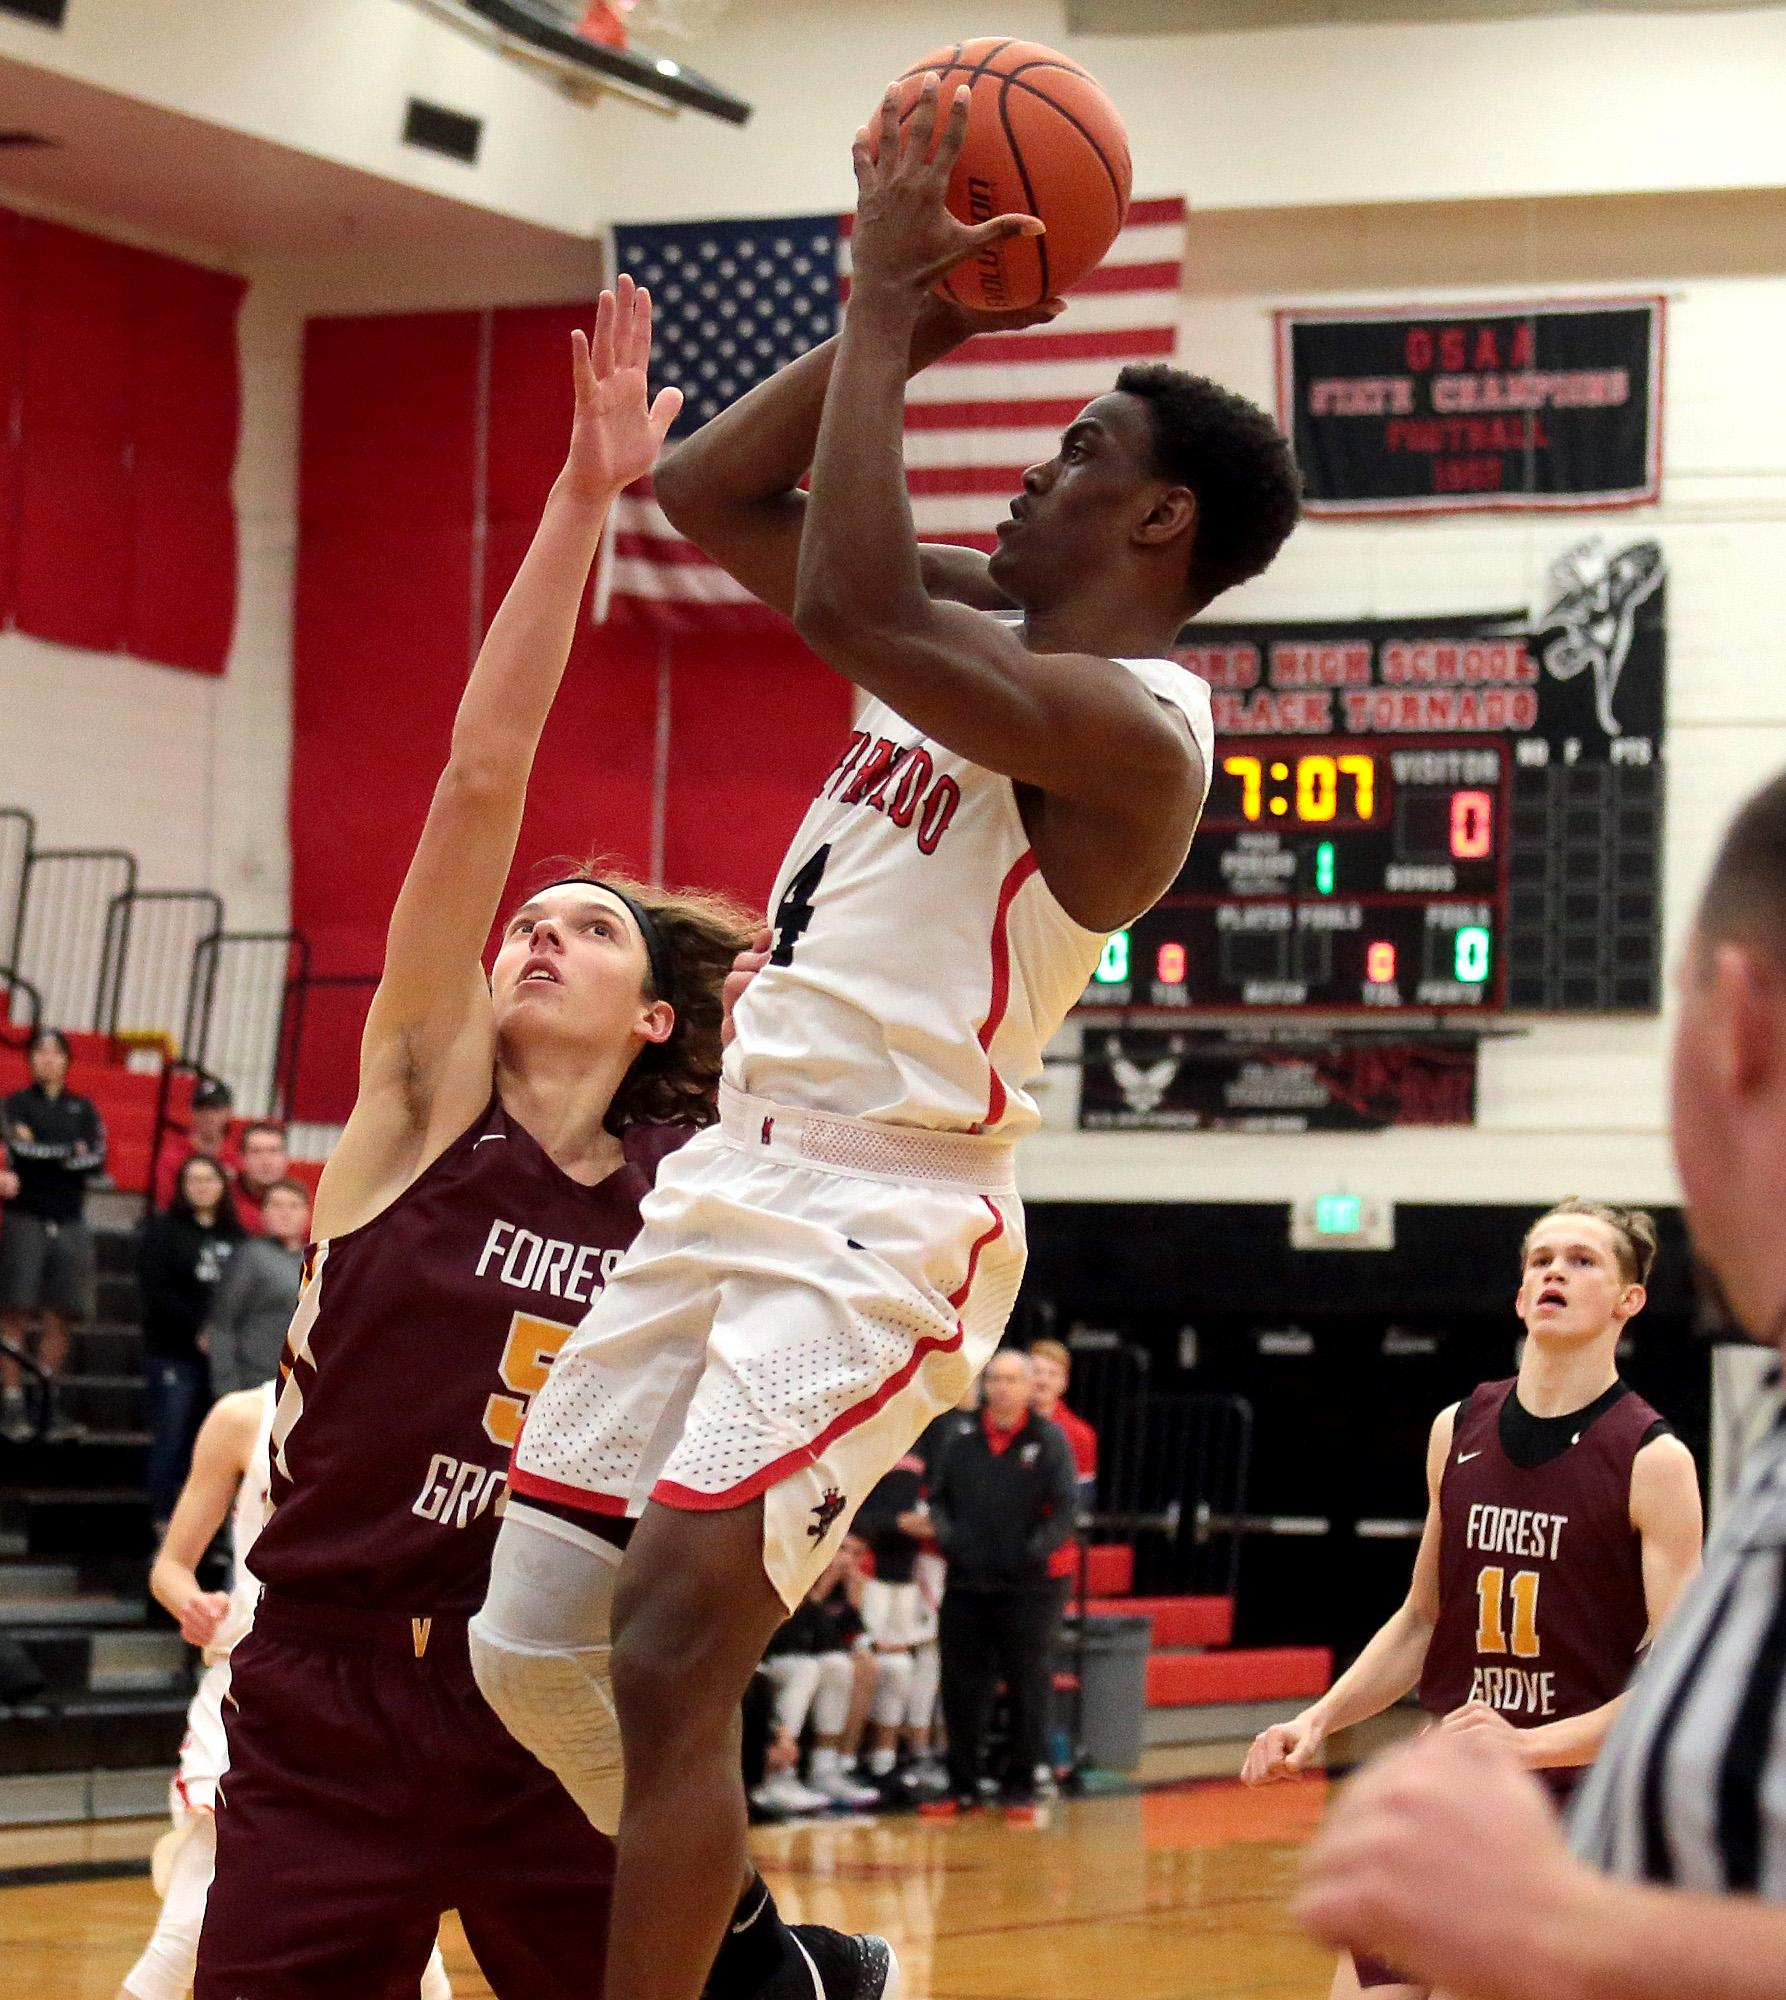 North Medford senior Jaray Thomas attempting to shoot against Forest Grove on the Opening night of the 2018 Abby's Holiday Classic at North Medford High on Thursday.(PHOTO BY:  LARRY STAUTH JR)